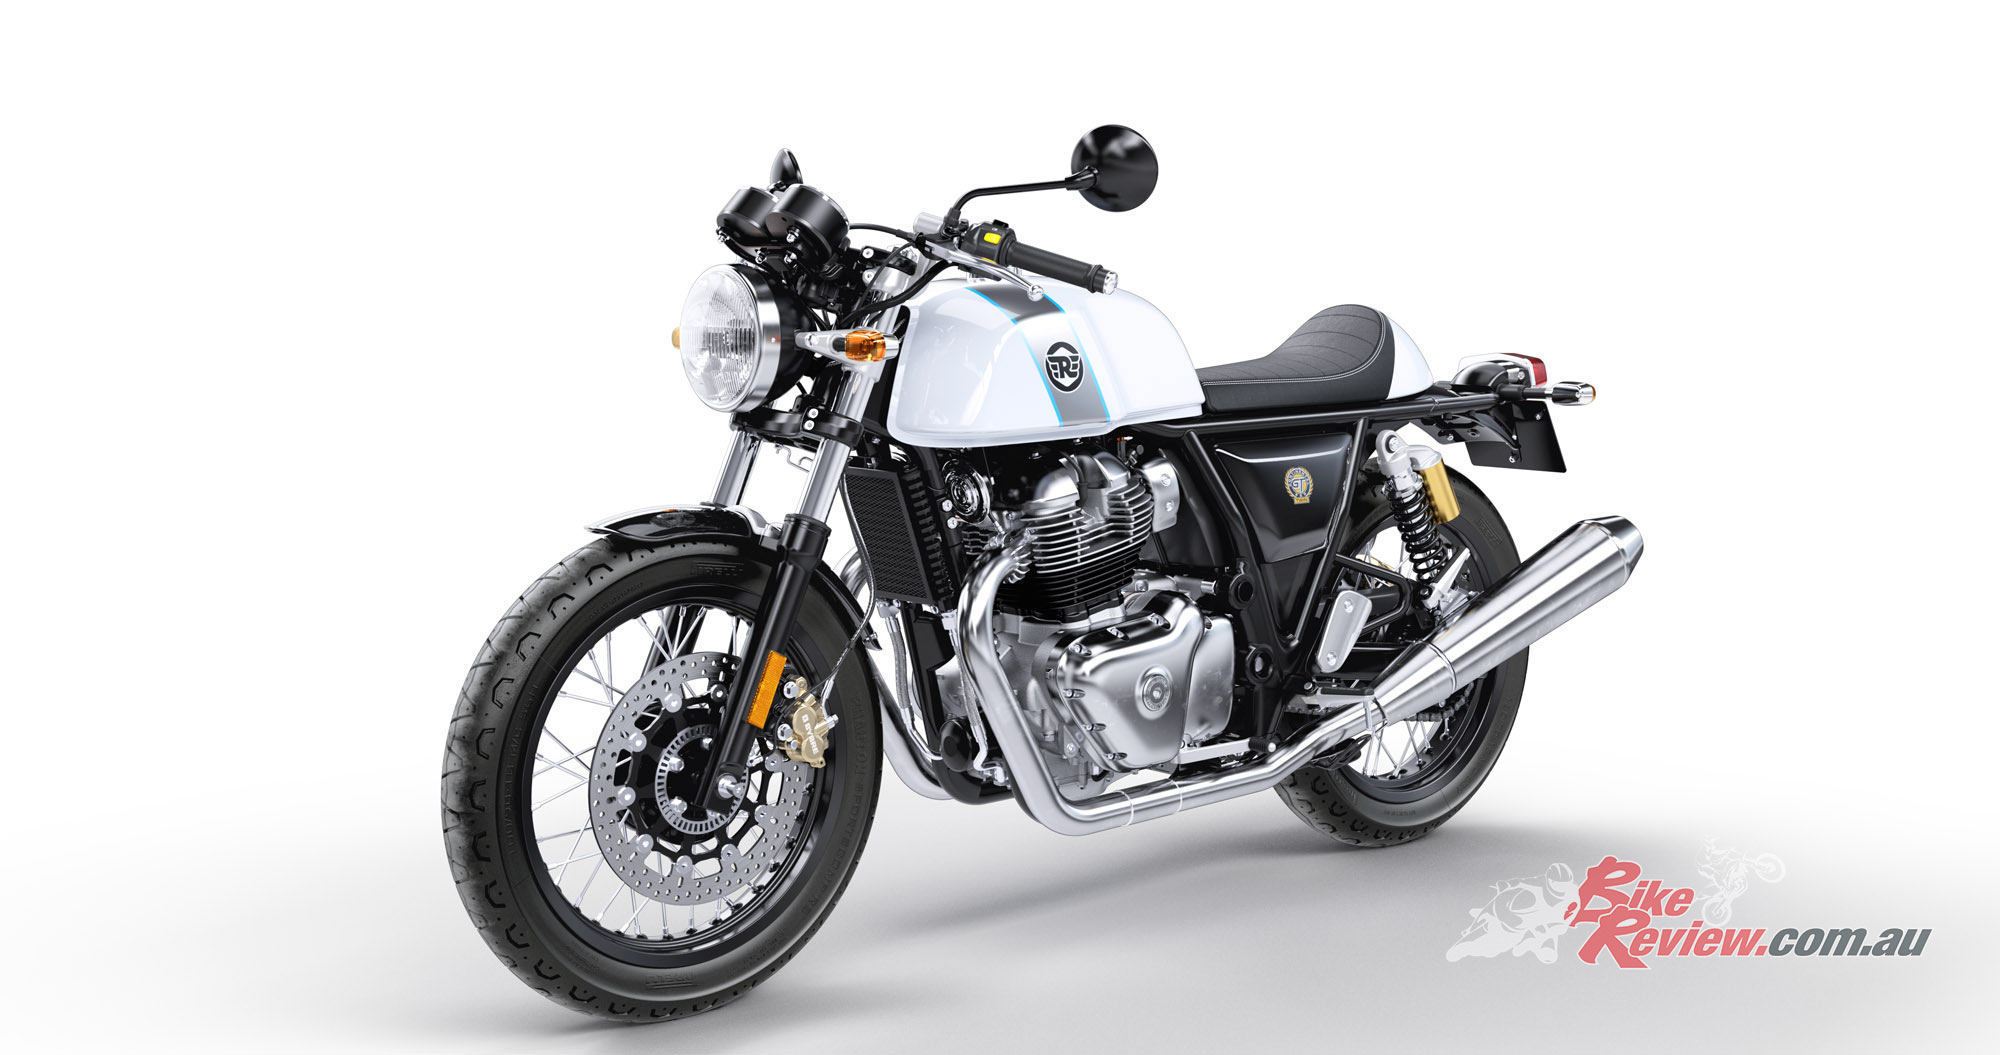 Royal Enfield 650 Twins Price Announced At Moto Expo